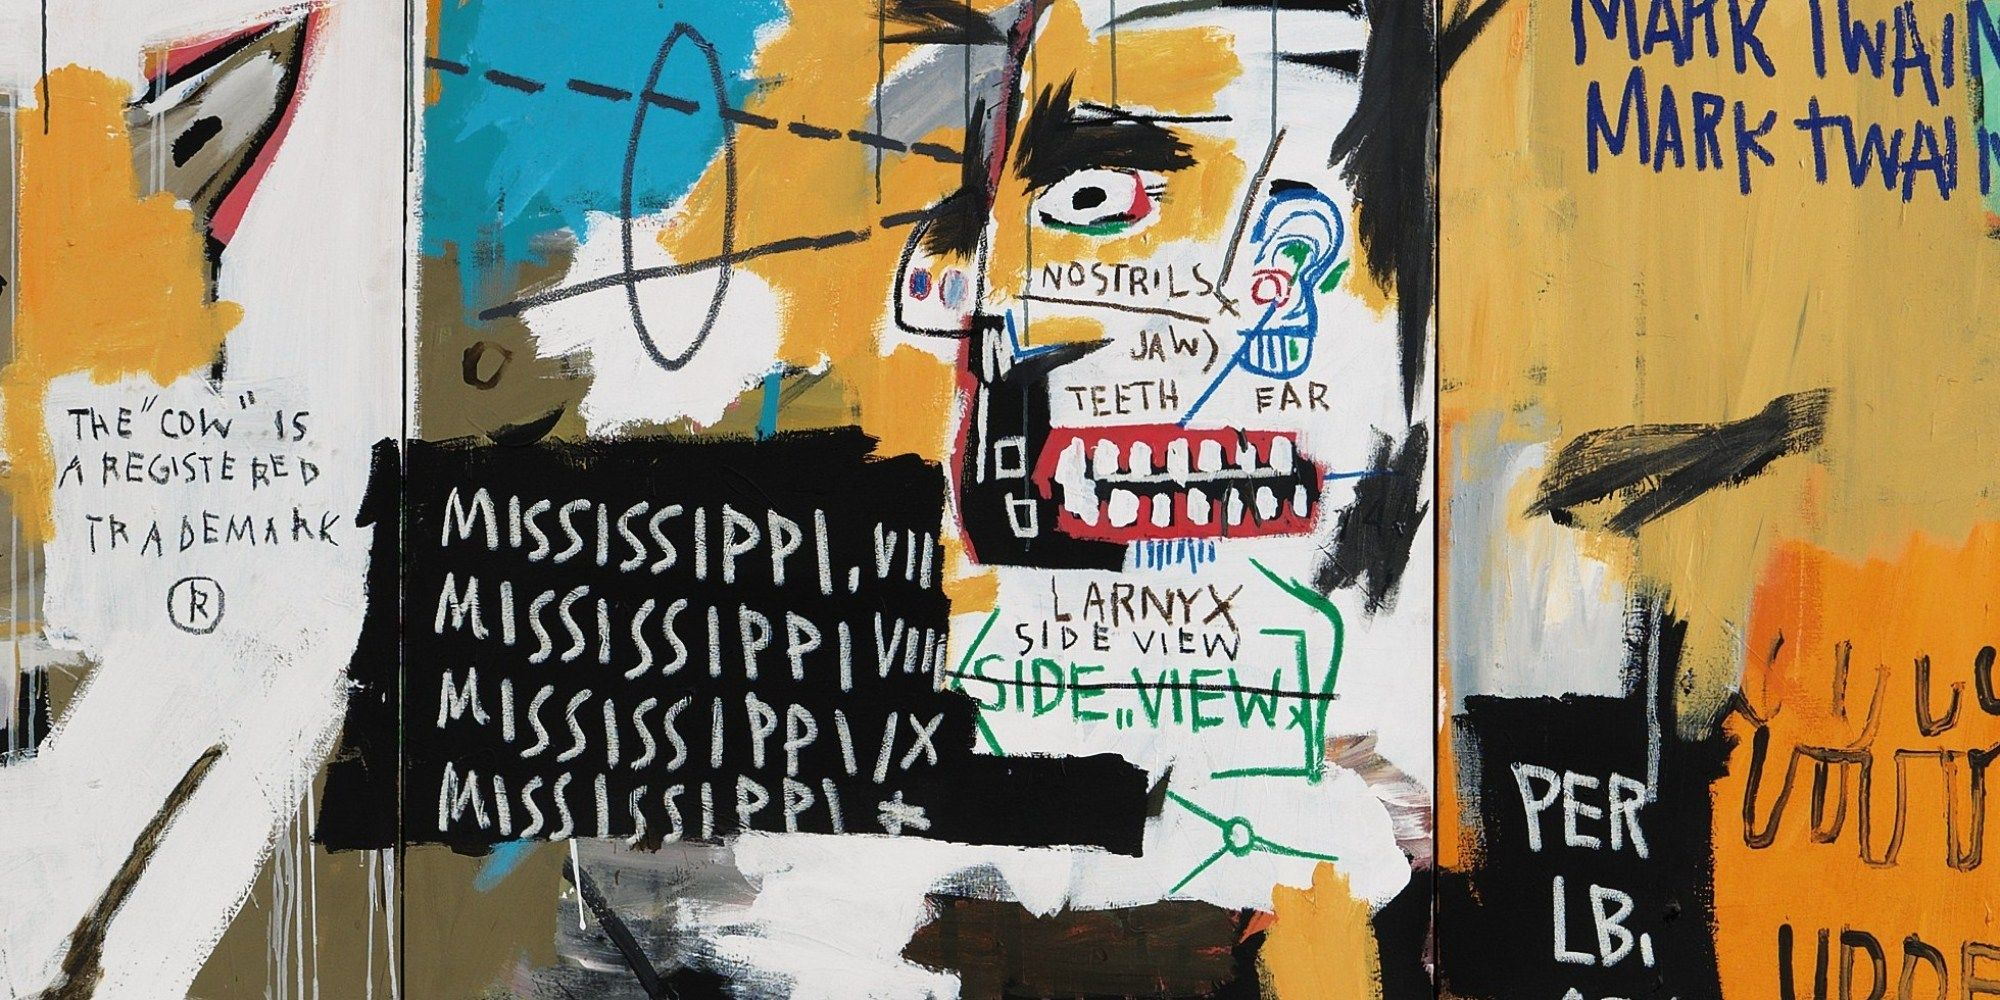 """Gaze upon Jean-Michel Basquiat's """"Undiscovered Genius Of The Mississippi Delta,"""" and your eyes are forced to dart from one ambiguous scribble to the next..."""